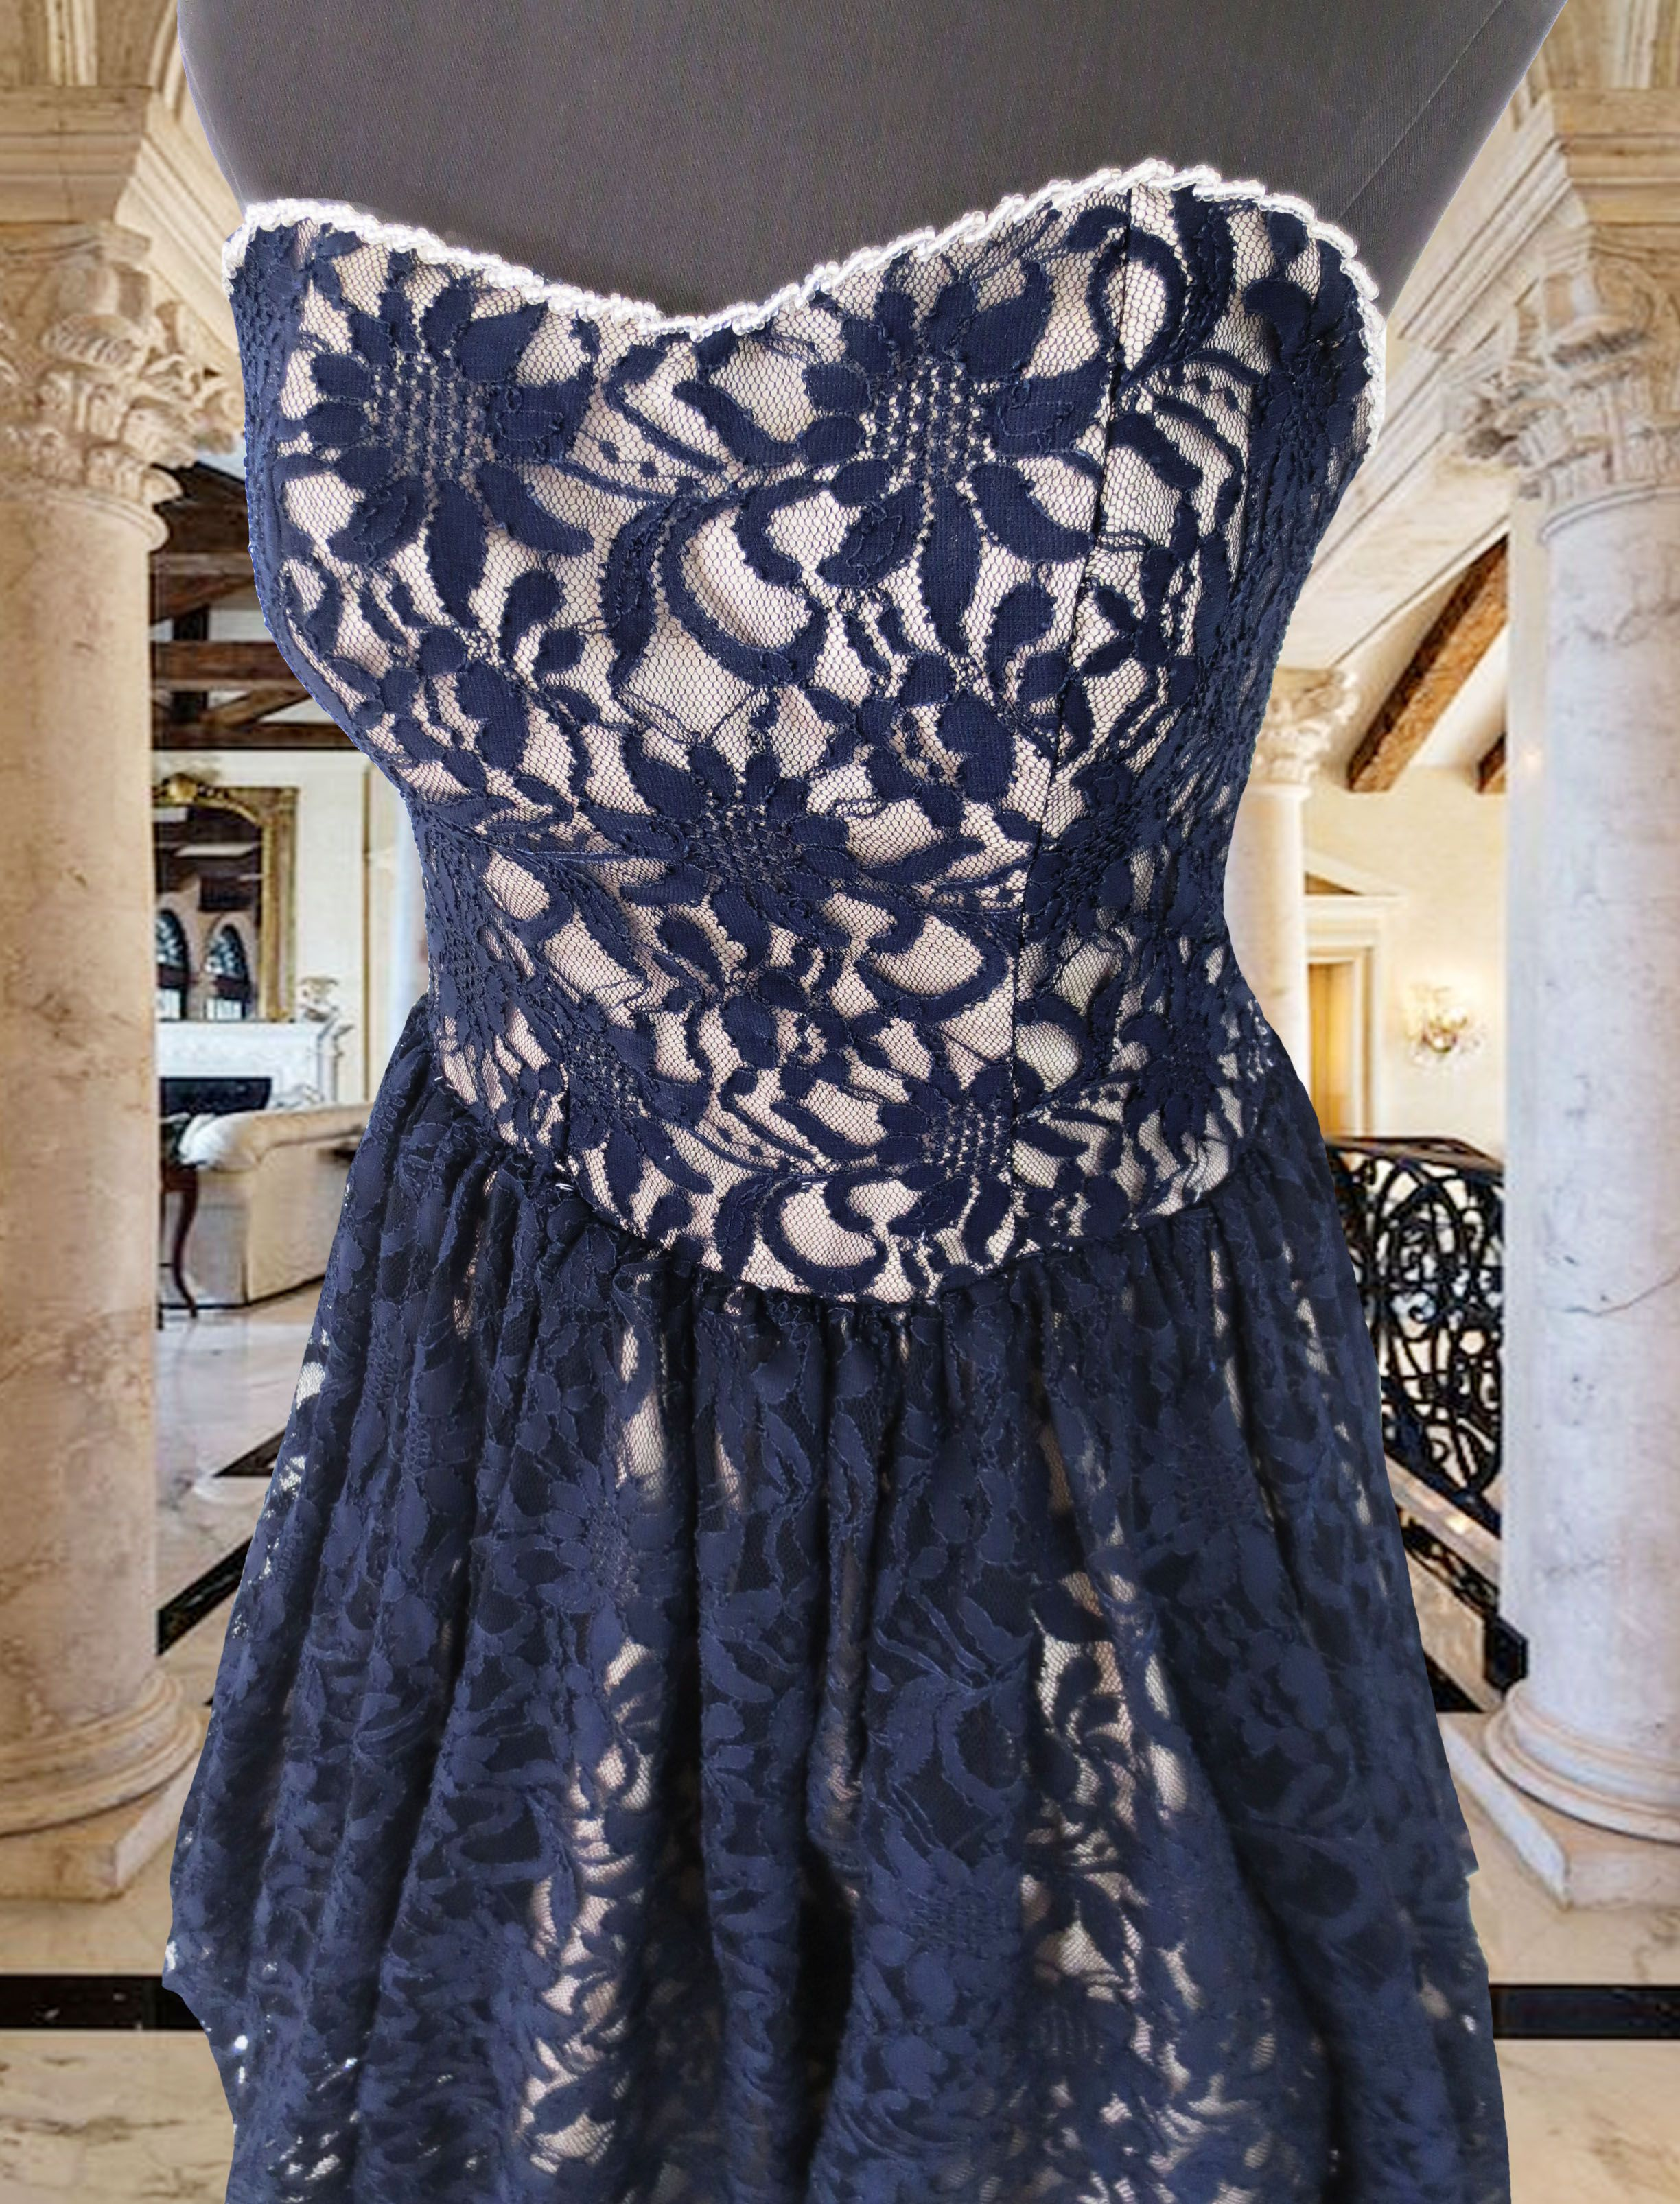 blue lace cocktail dress for rent Php1k www.gownforent.com Debut ...